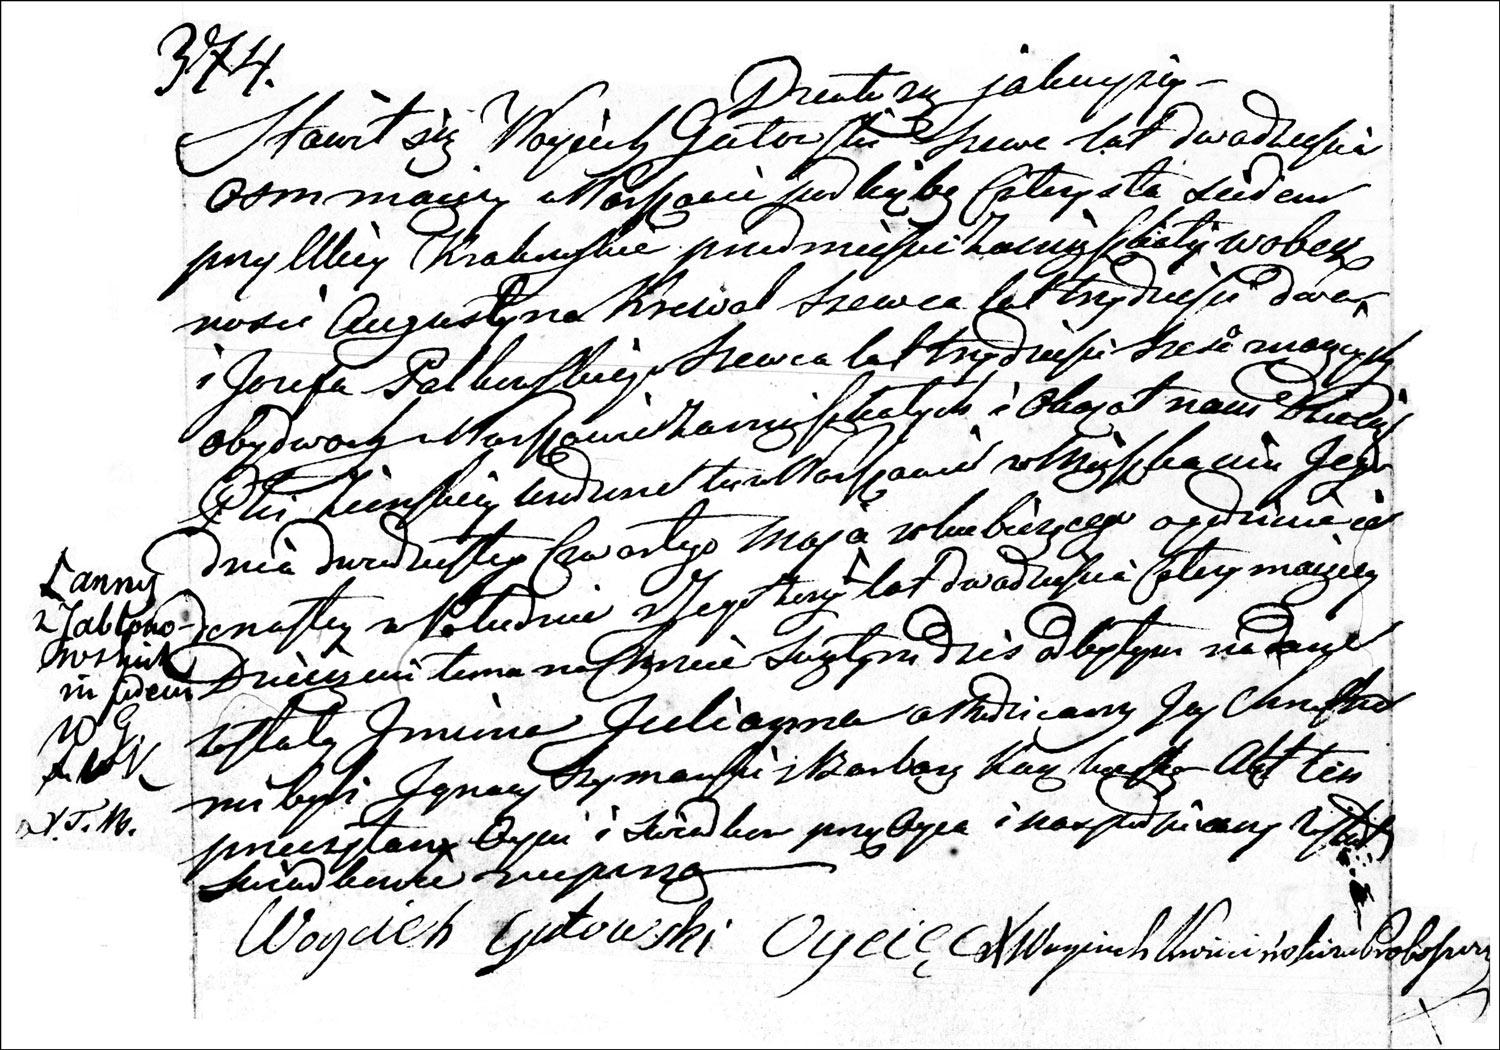 The Birth and Baptismal Record of Julianna Gutowska – 1833